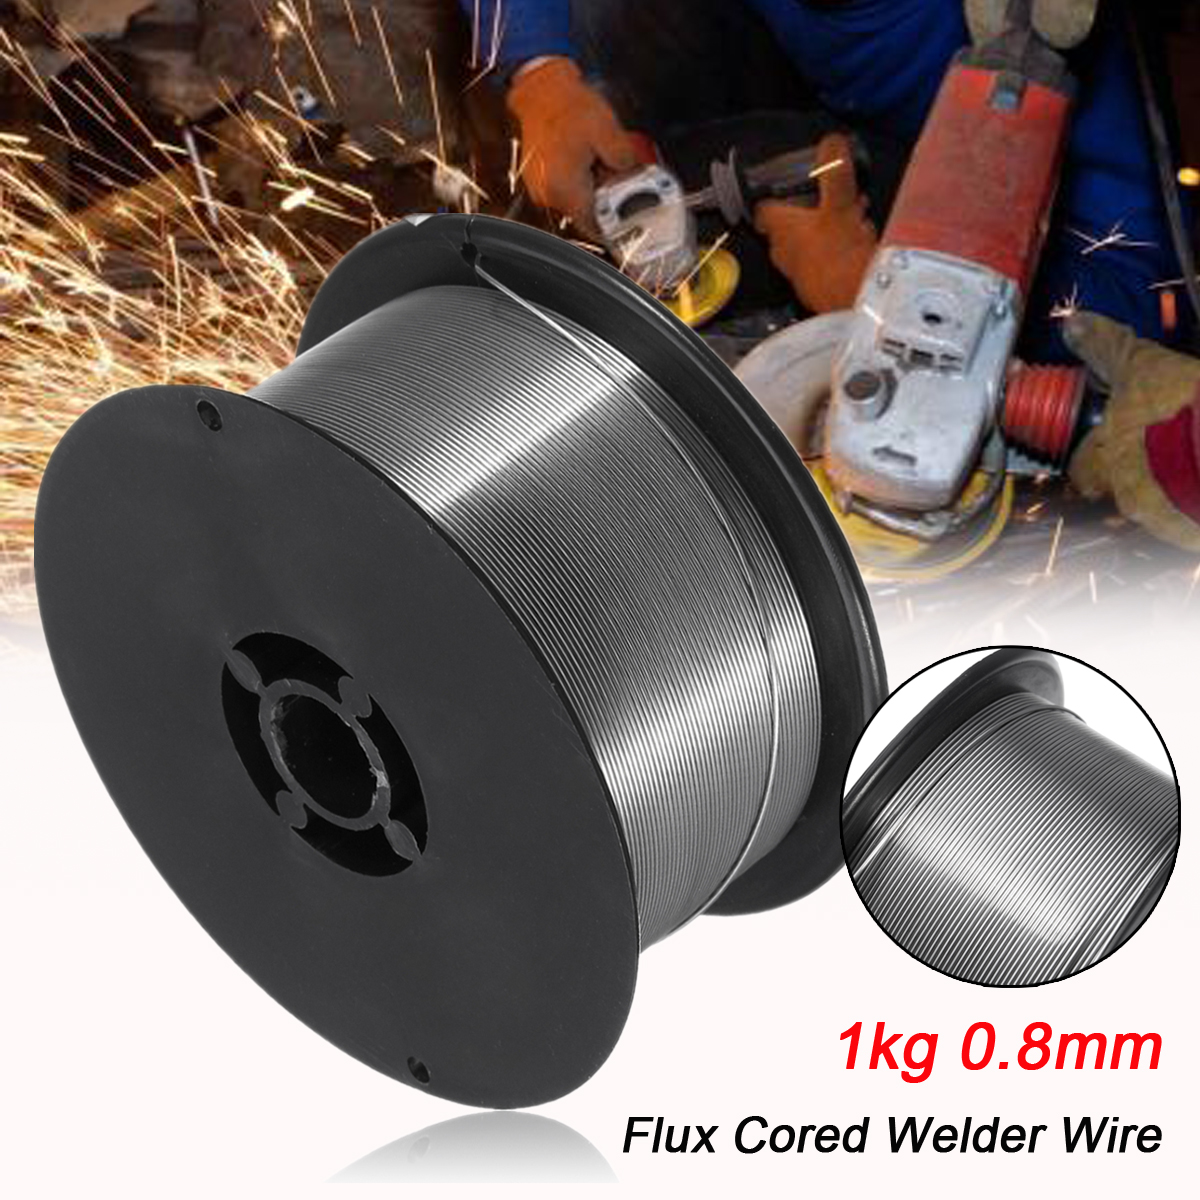 1 Roll 1kg 0.8mm Gasless Mig Welding Wire Flux Cored Wire Stainless For Mig Welder Tool New Arrival